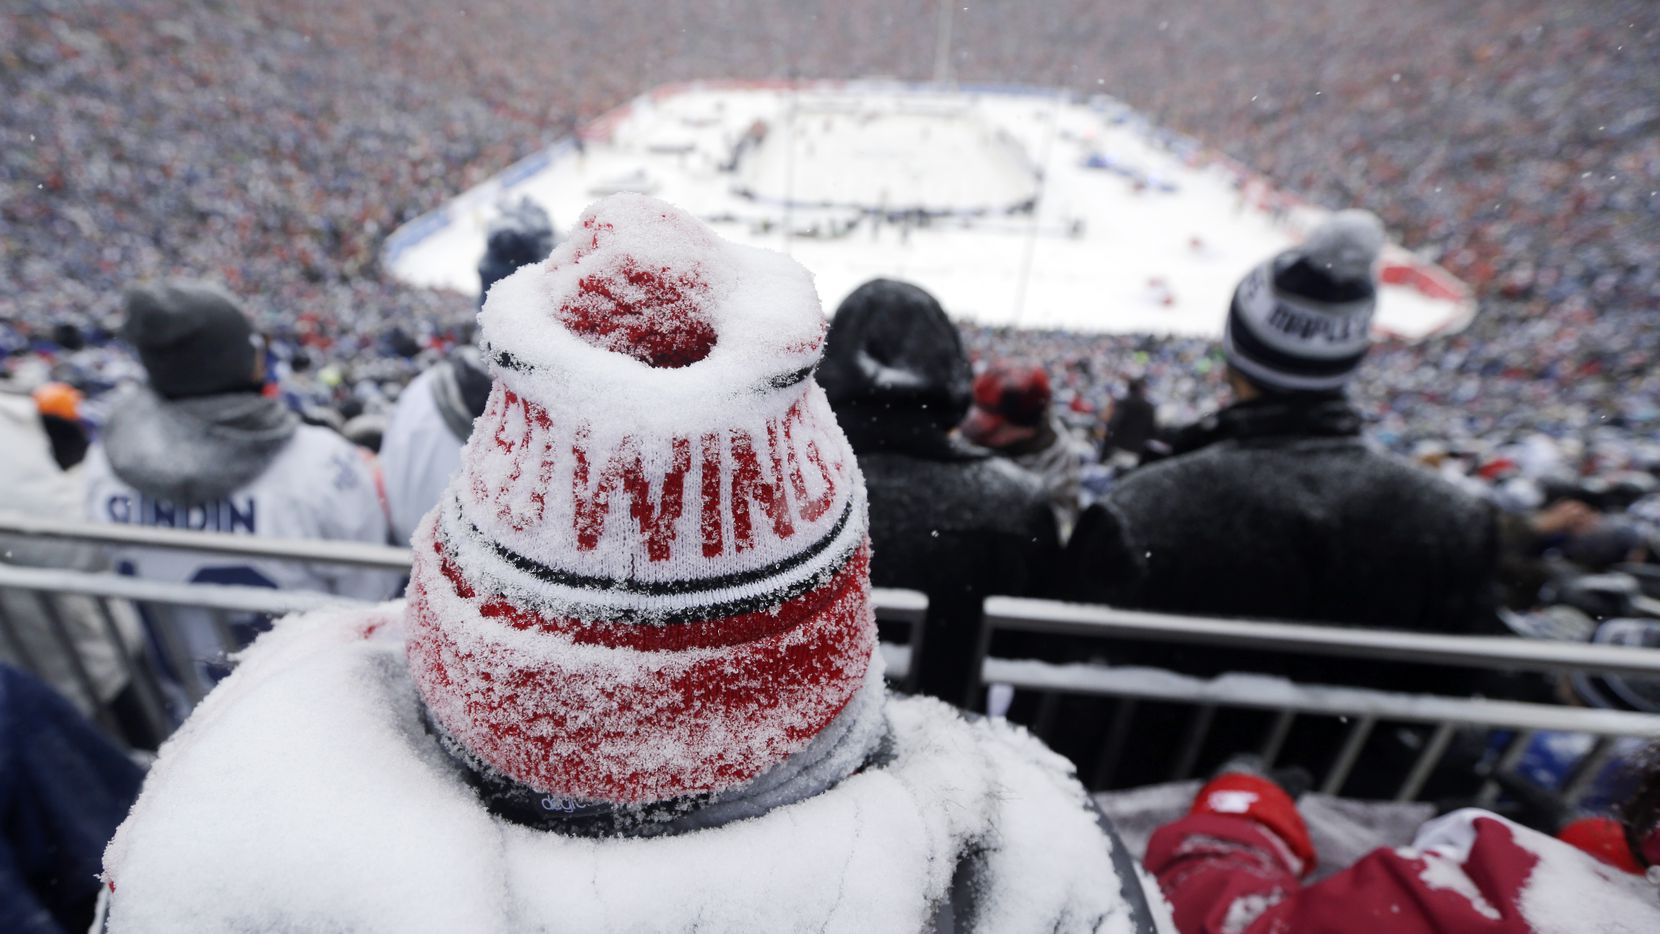 A Detroit Red Wings fan, coated with snow, watched during the third period of the 2014 Winter Classic in Ann Arbor, Mich. In all probability, Dallas Stars fans won't have to worry about a scene like this at the Cotton Bowl on Jan. 1 for this season's version of the outdoor hockey game.